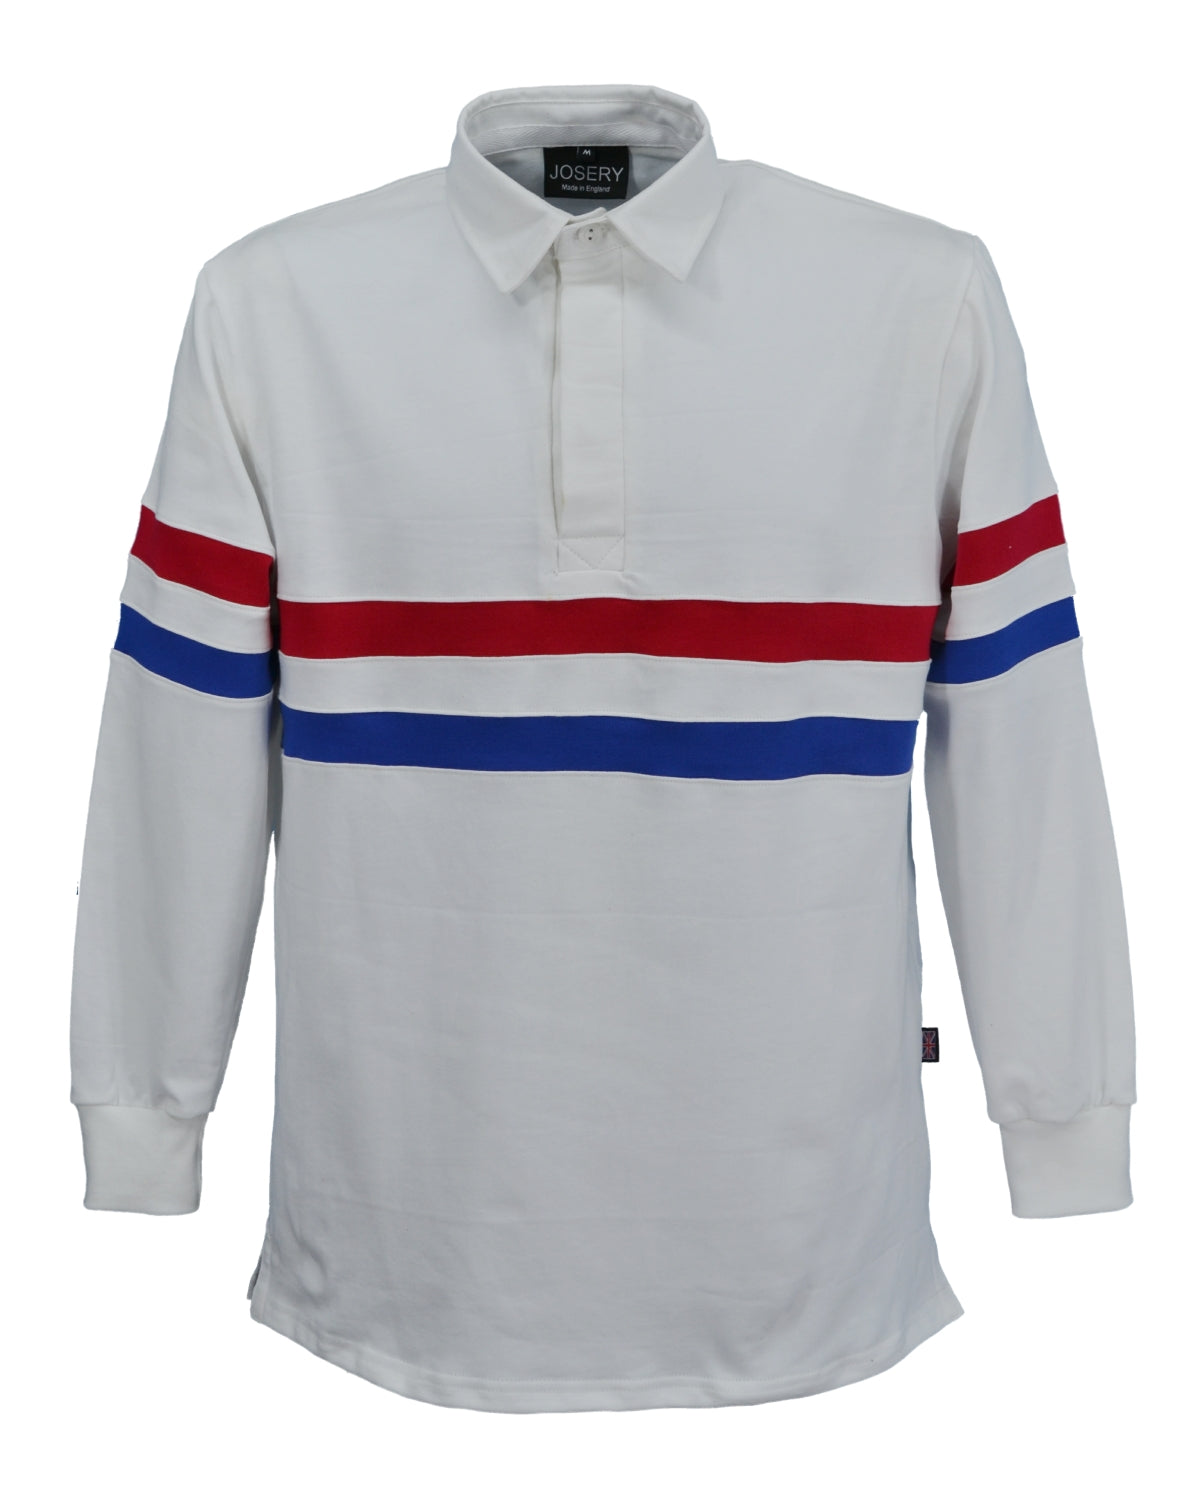 Rugby shirt with red, white and blue stripes, made in England.